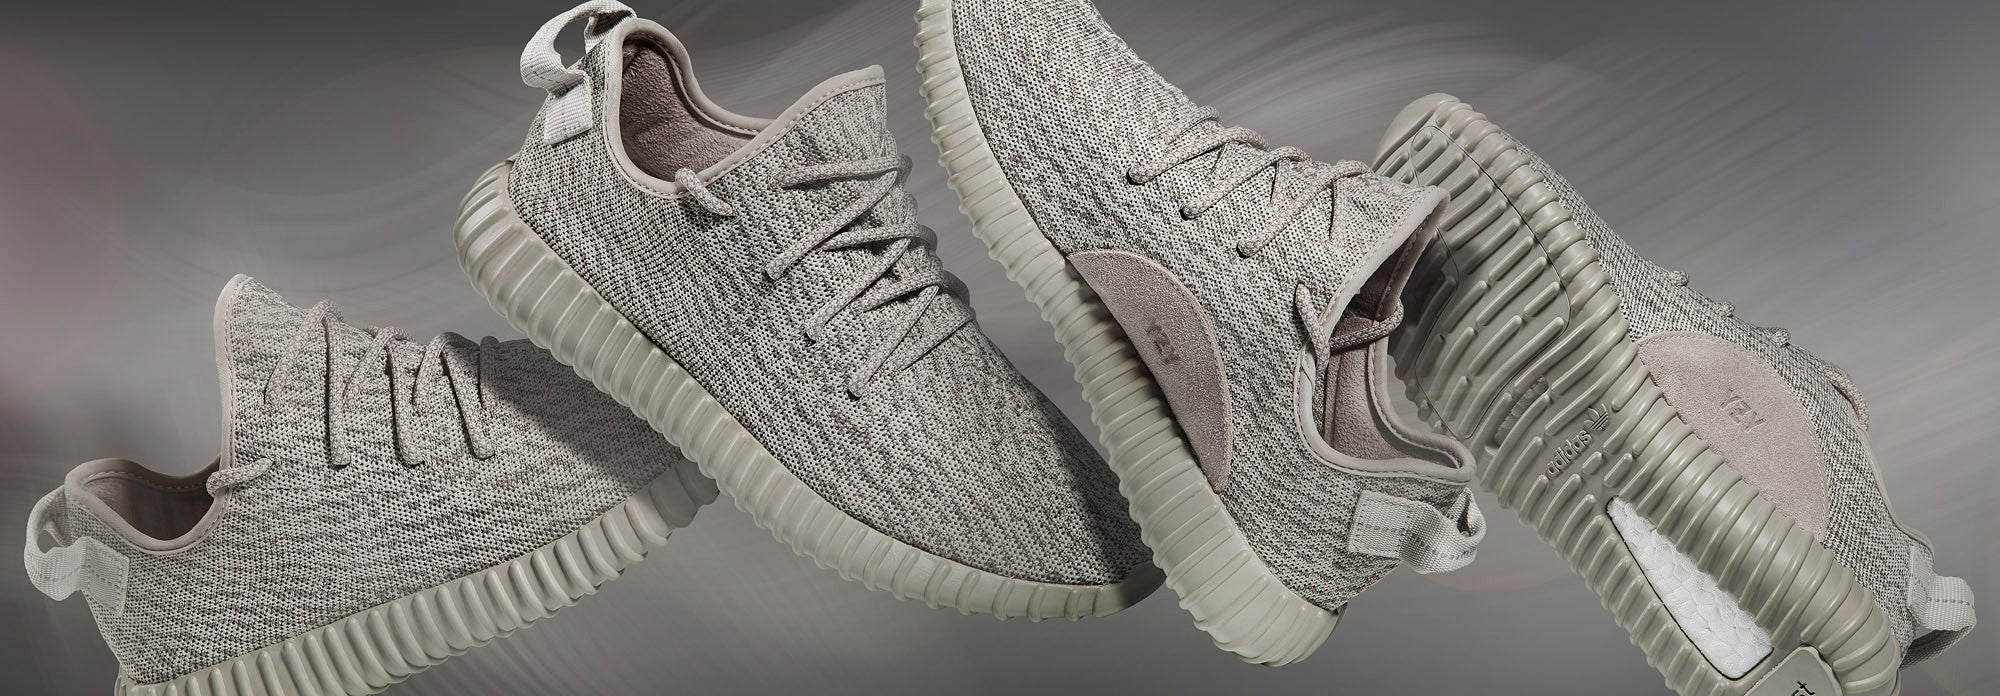 YEEZY BOOST 350 'Moonrock' - November 14th Launch